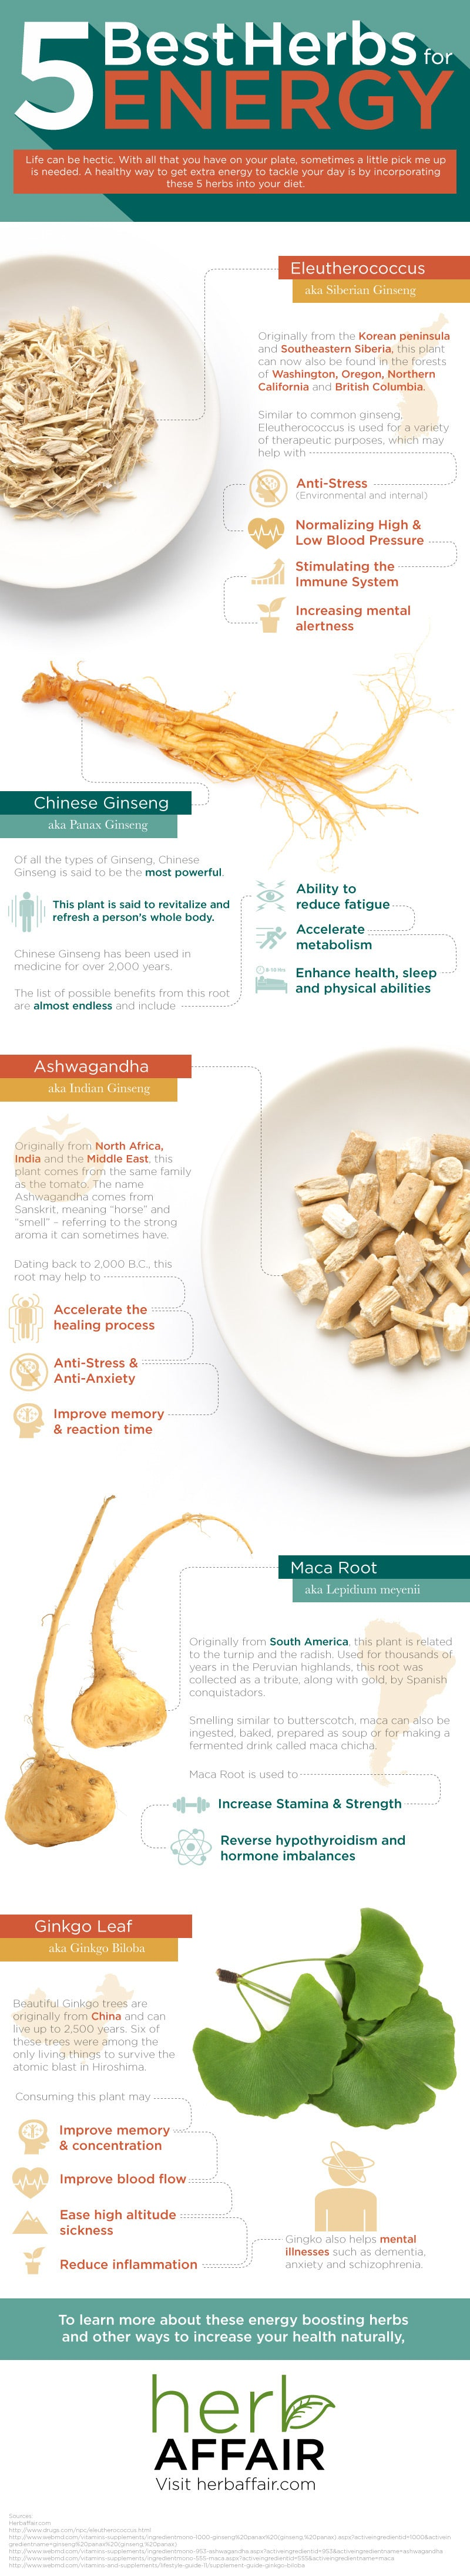 5 Best Herbs for Energy Infographic